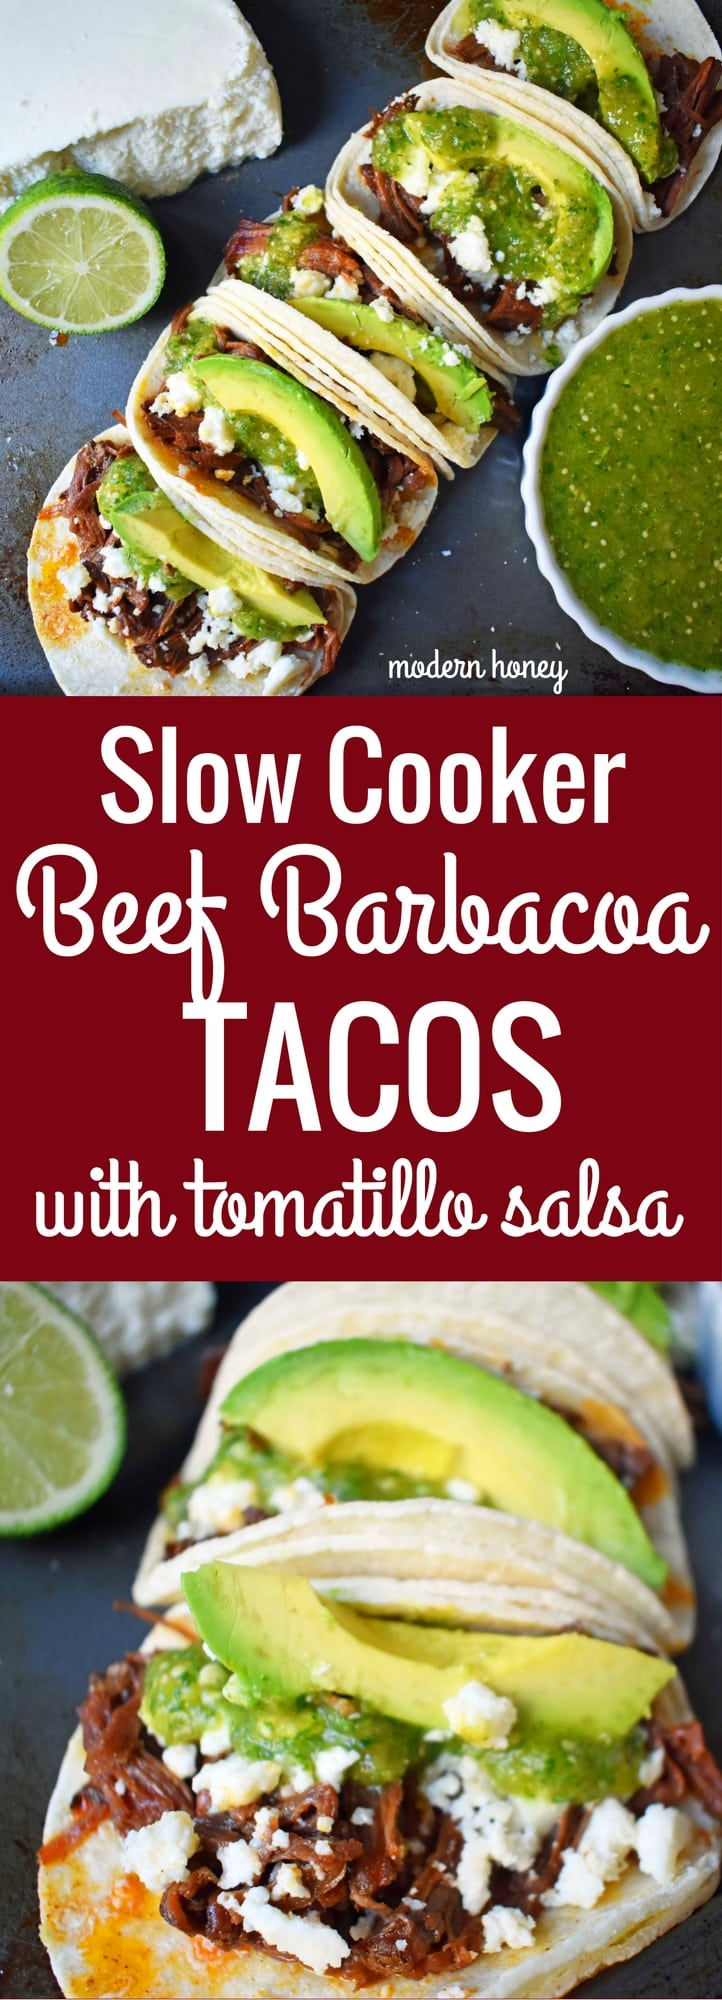 Slow Cooker Beef Barbacoa Tacos with Tomatillo Salsa ...